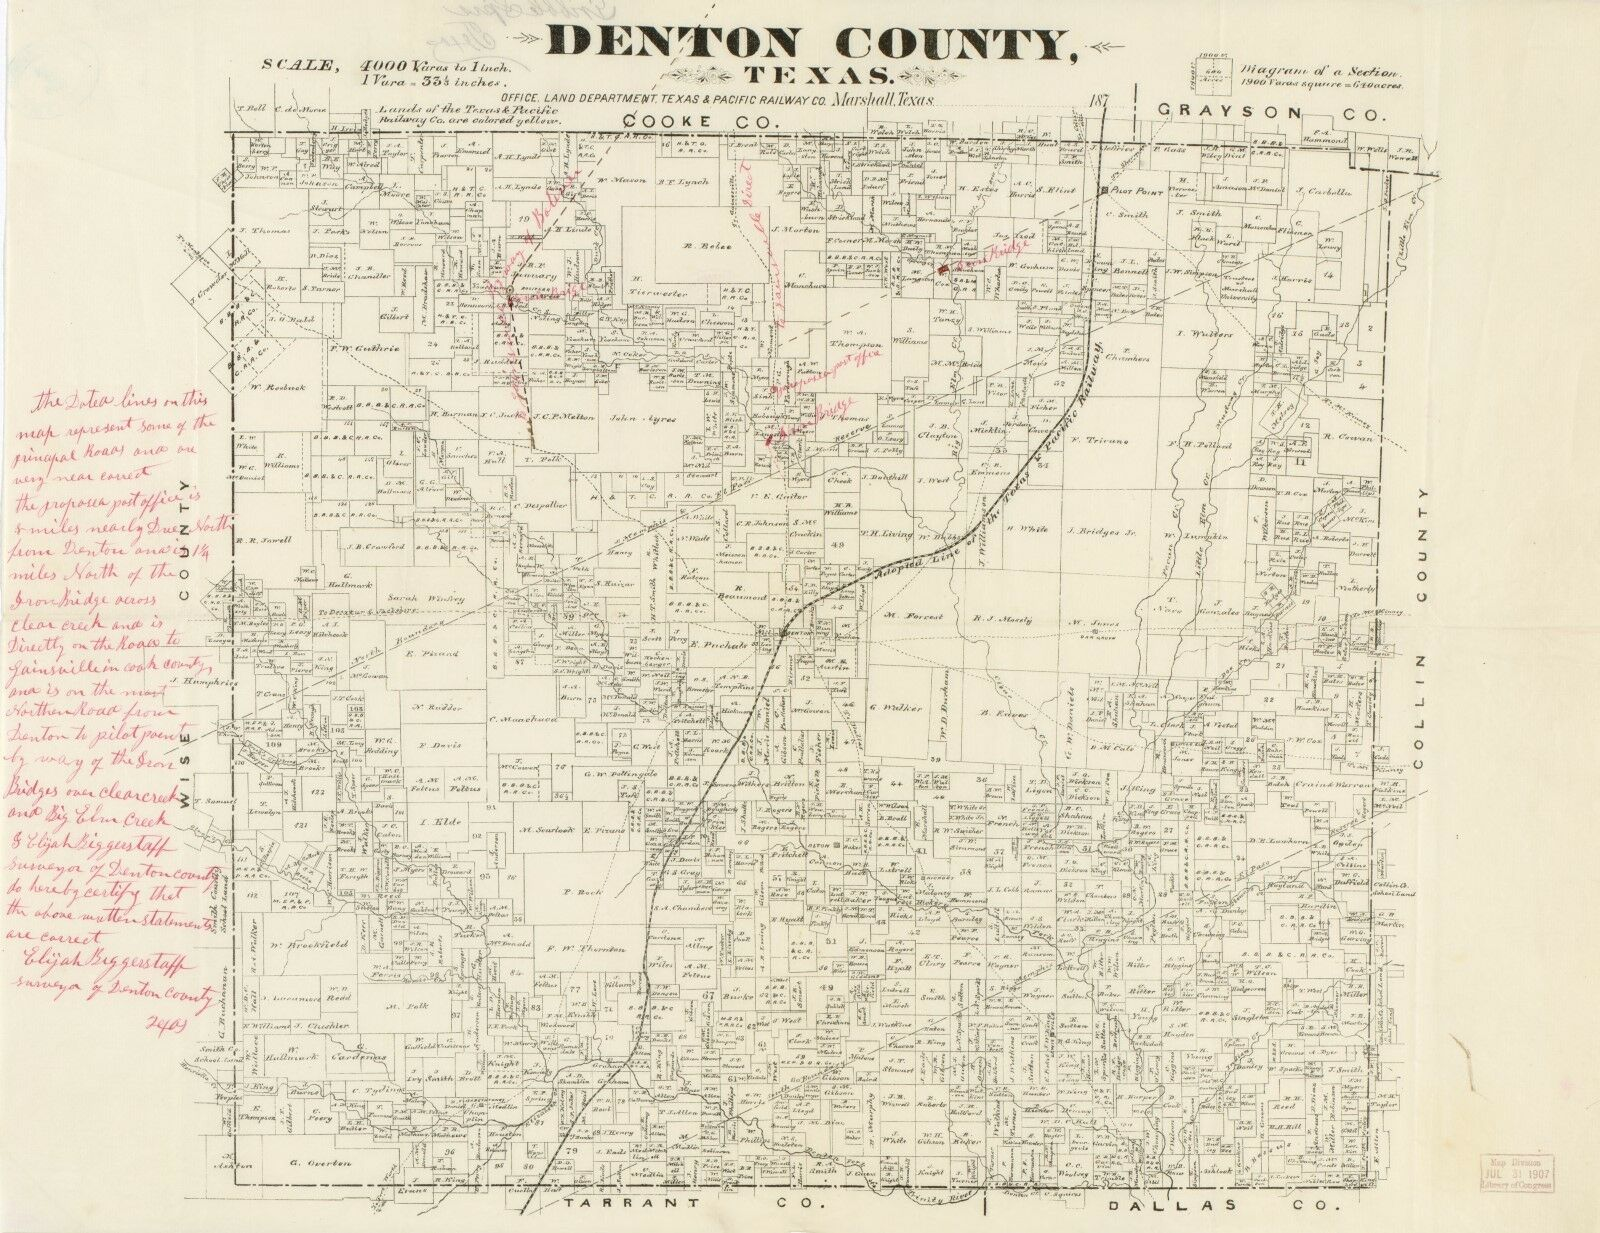 Texas Map Of Cities Towns And Counties.Details About A4 Reprint Of American Cities Towns States Map Denton County Texas